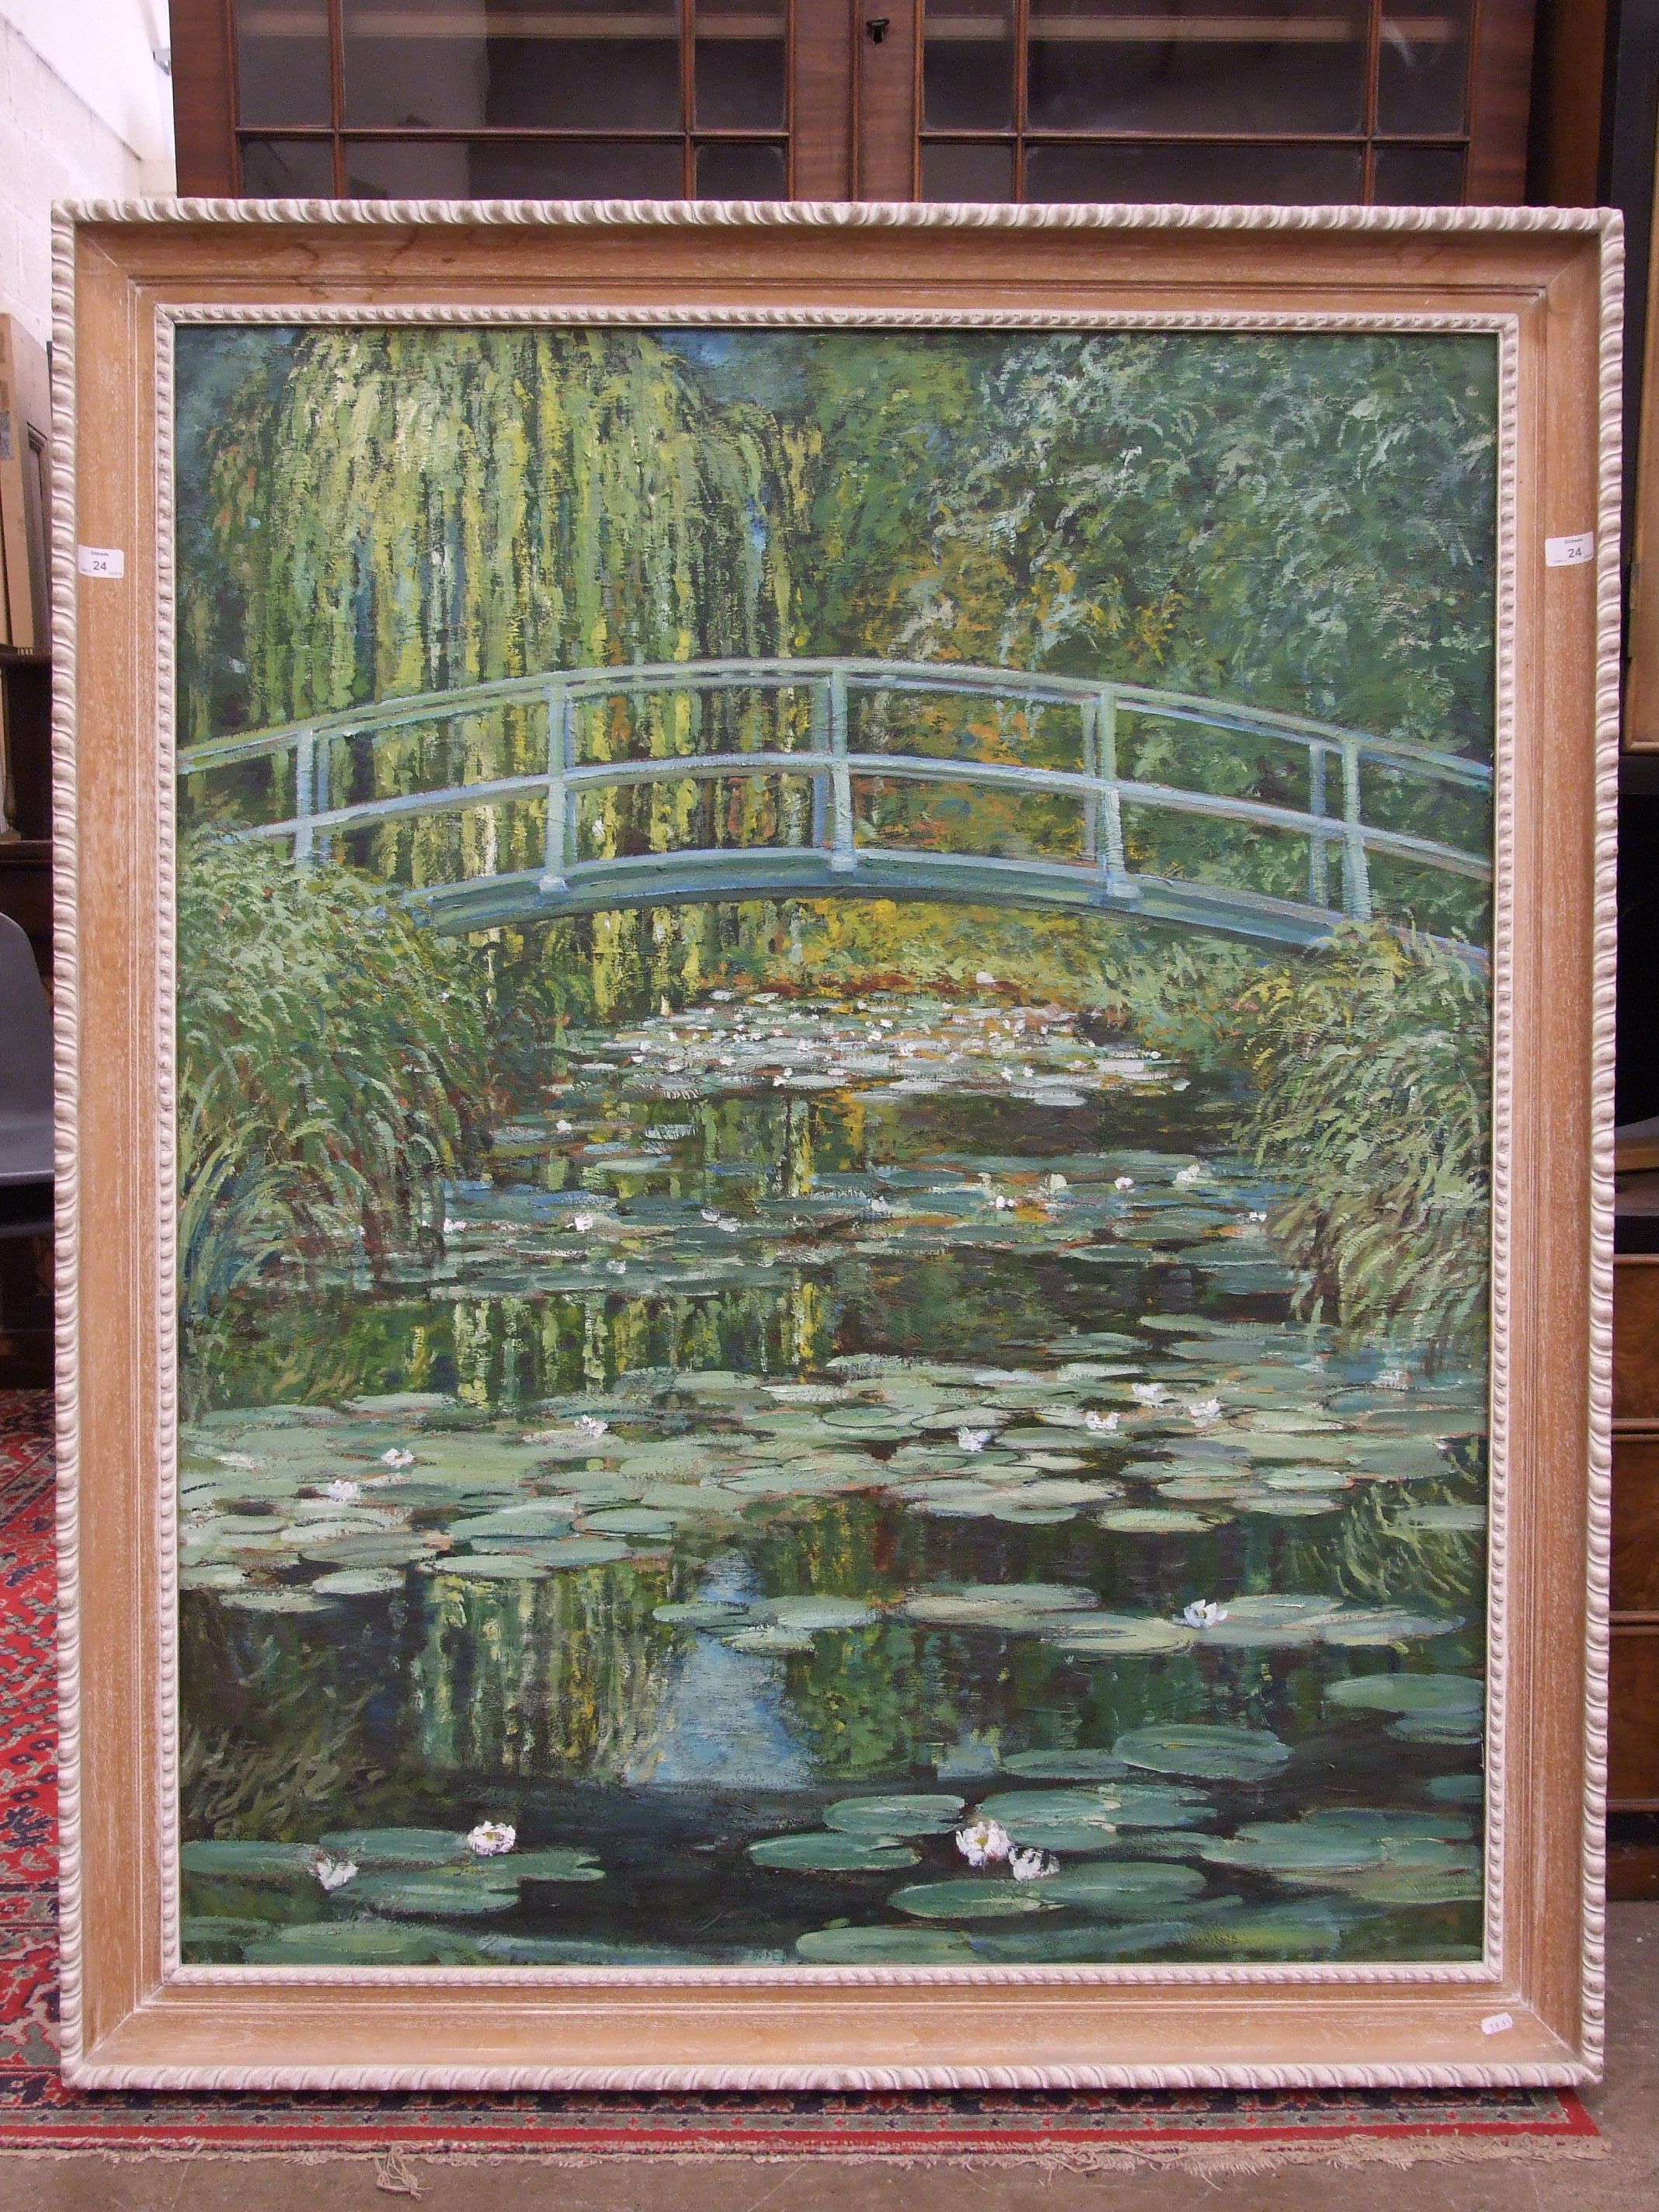 Unsigned copy MONET'S BRIDGE OVER A POND OF LILLIES Oil on board, 127 x 100cm. - Image 2 of 2